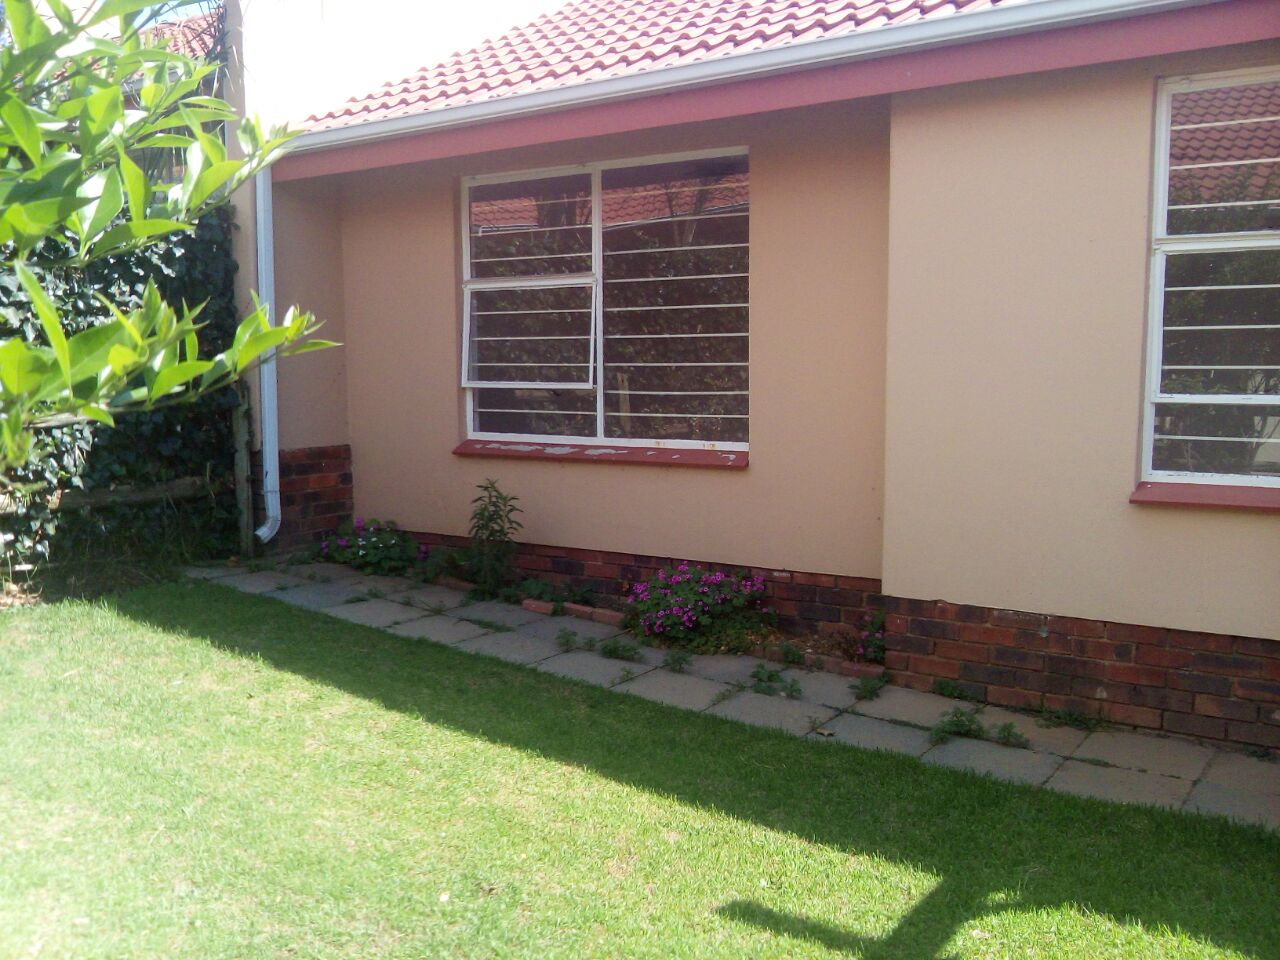 2 Bedroom Townhouse for sale in Sunninghill ENT0074719 : photo#0